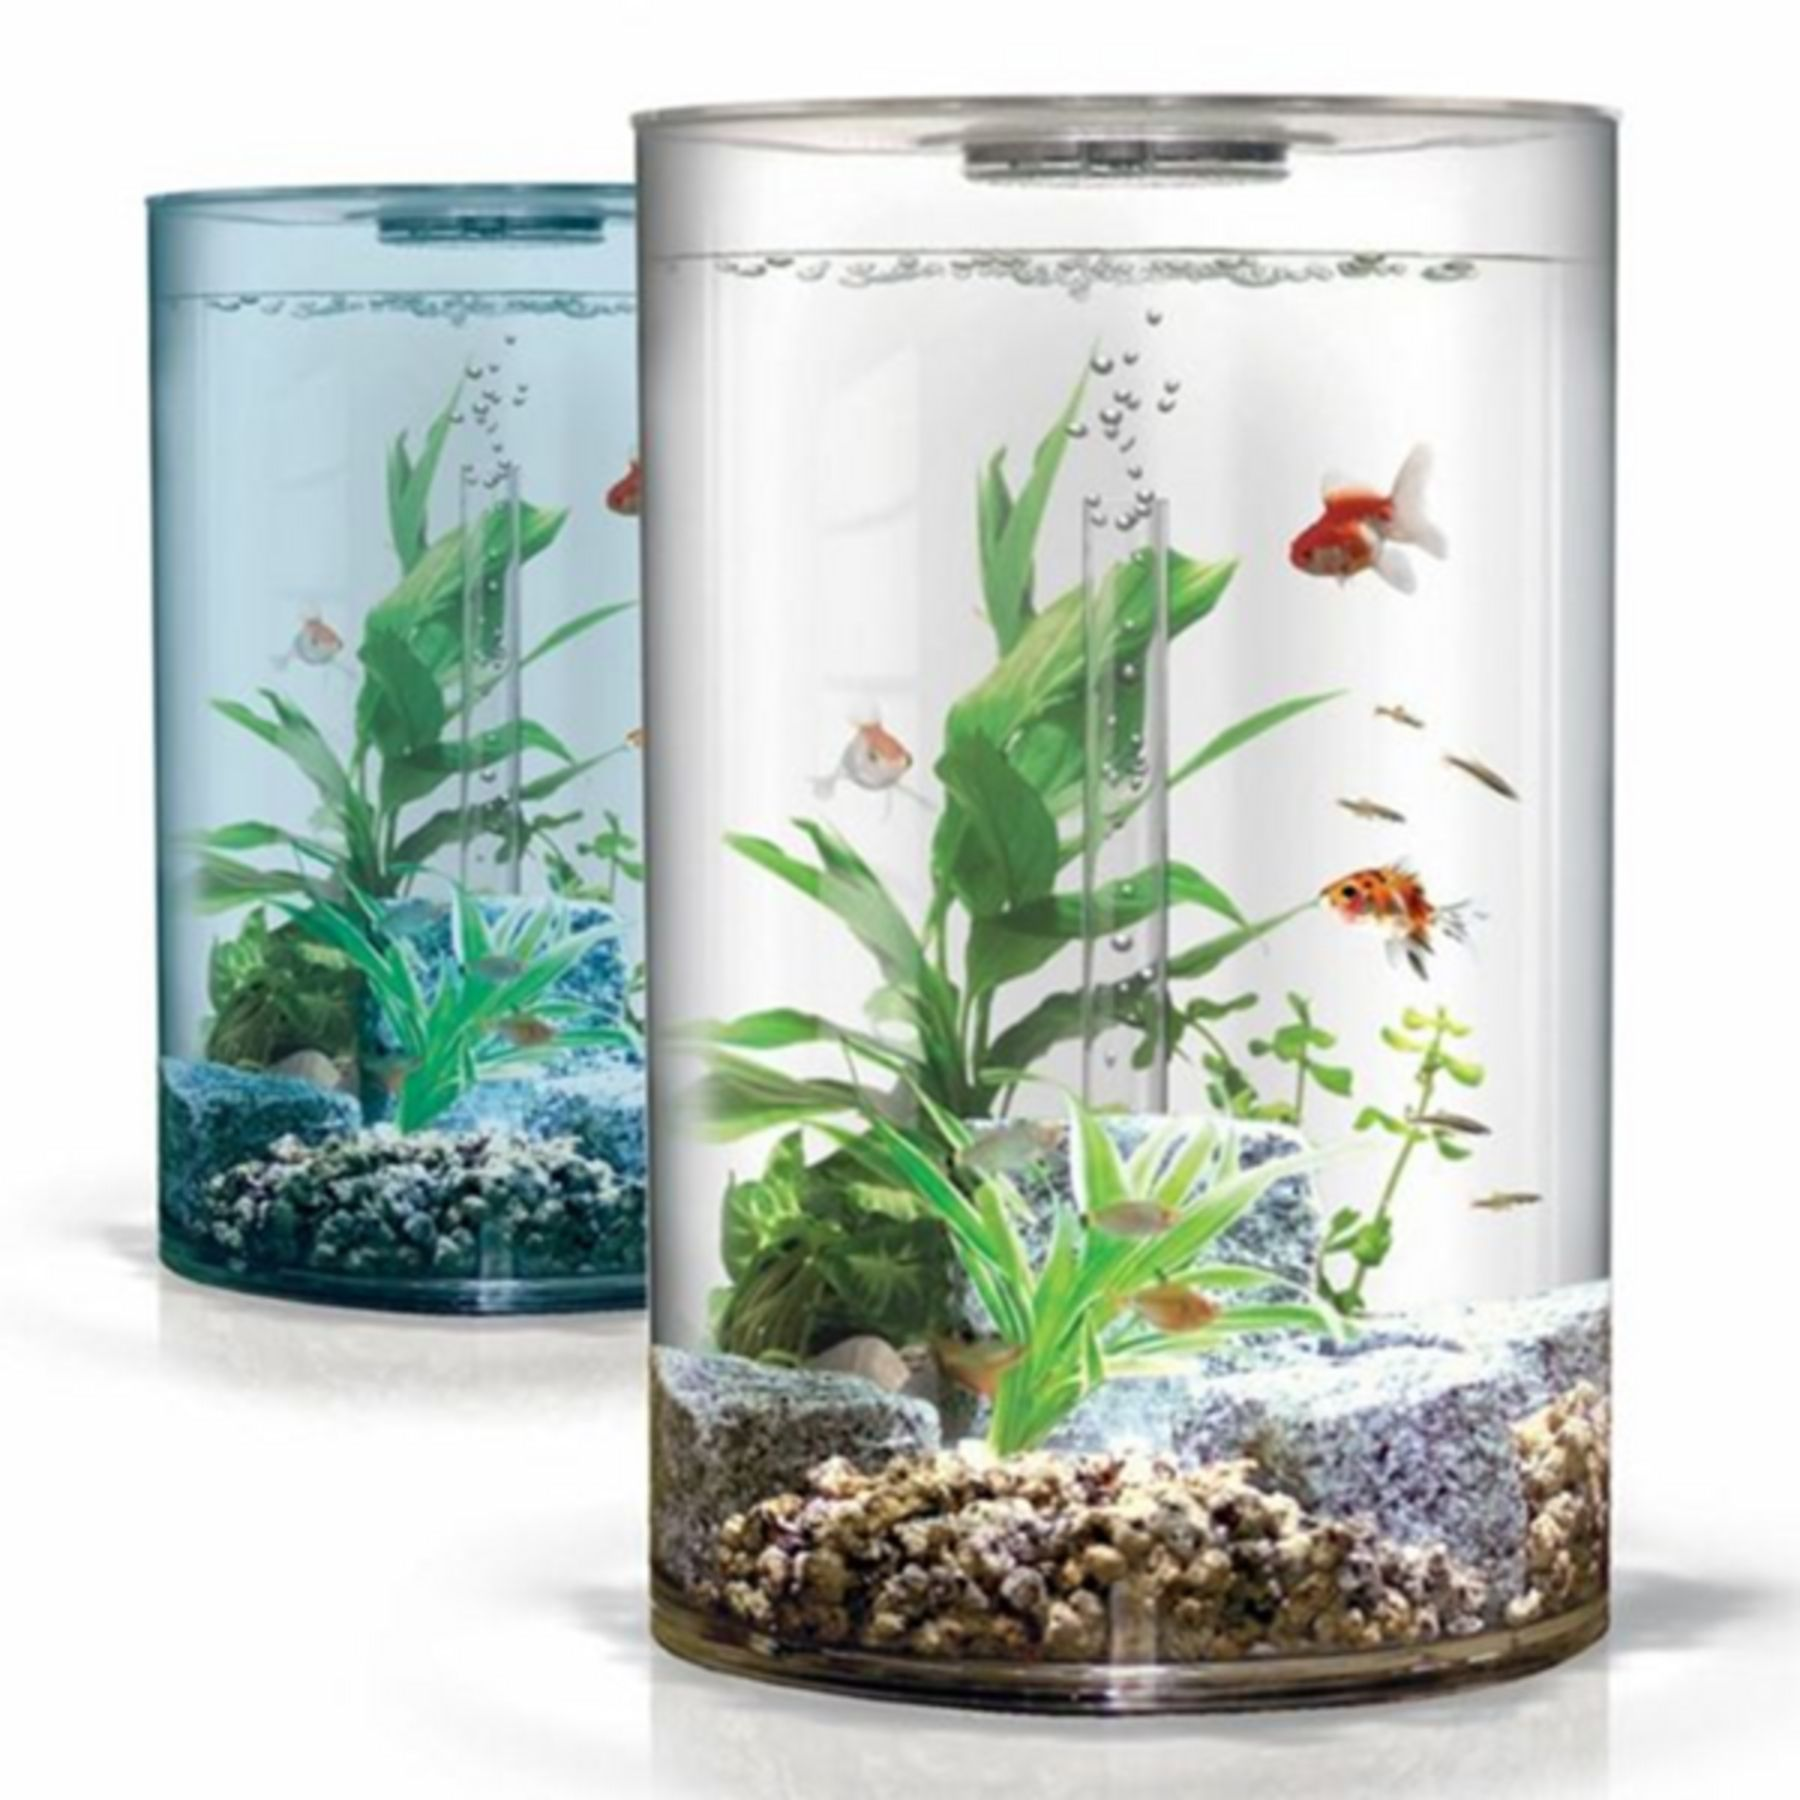 Brilliant 12 Simple and Cheap Fish Aquarium Design Ideas ...